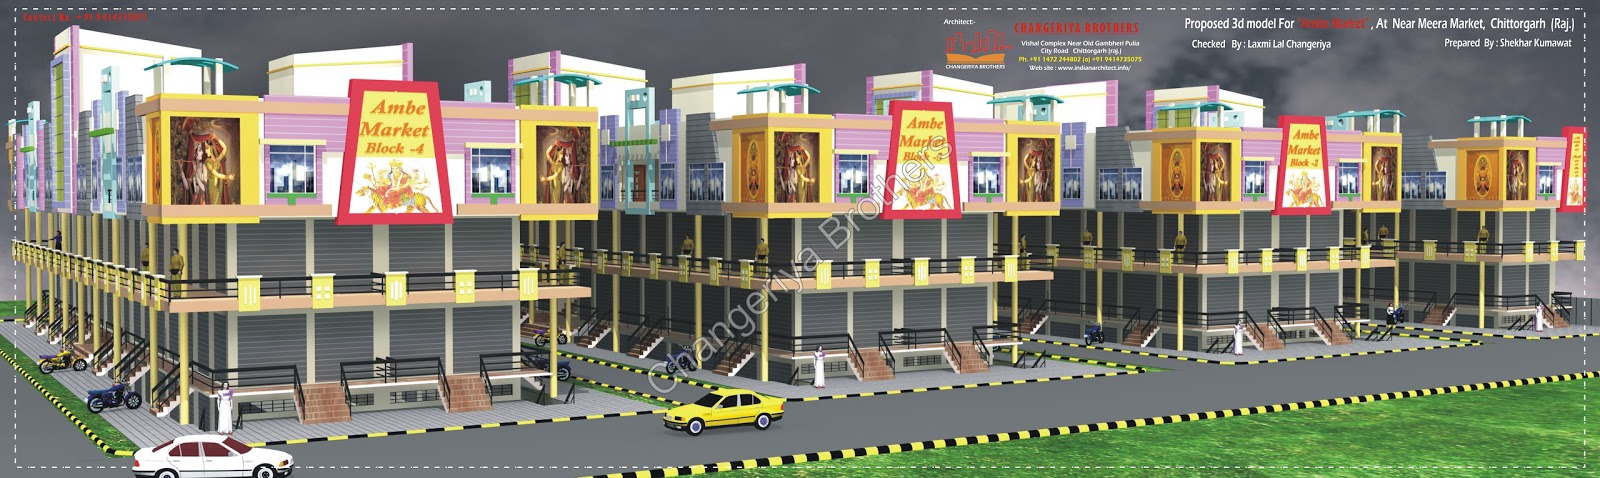 3d Naksha Ambe Market Multi Perpose Project